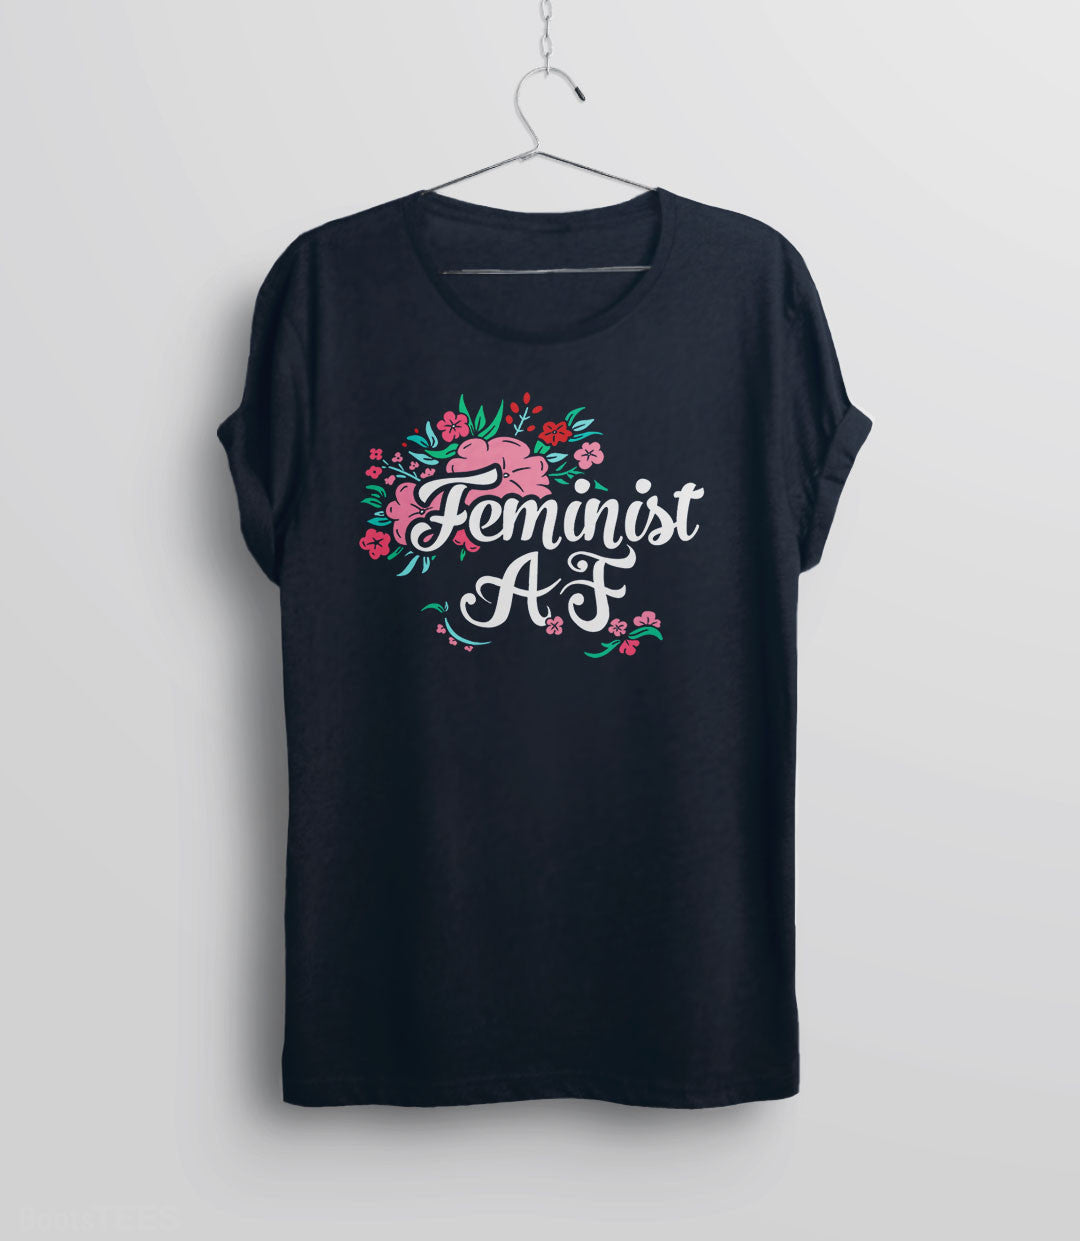 Feminist AF Shirt with flowers and typography - unisex navy